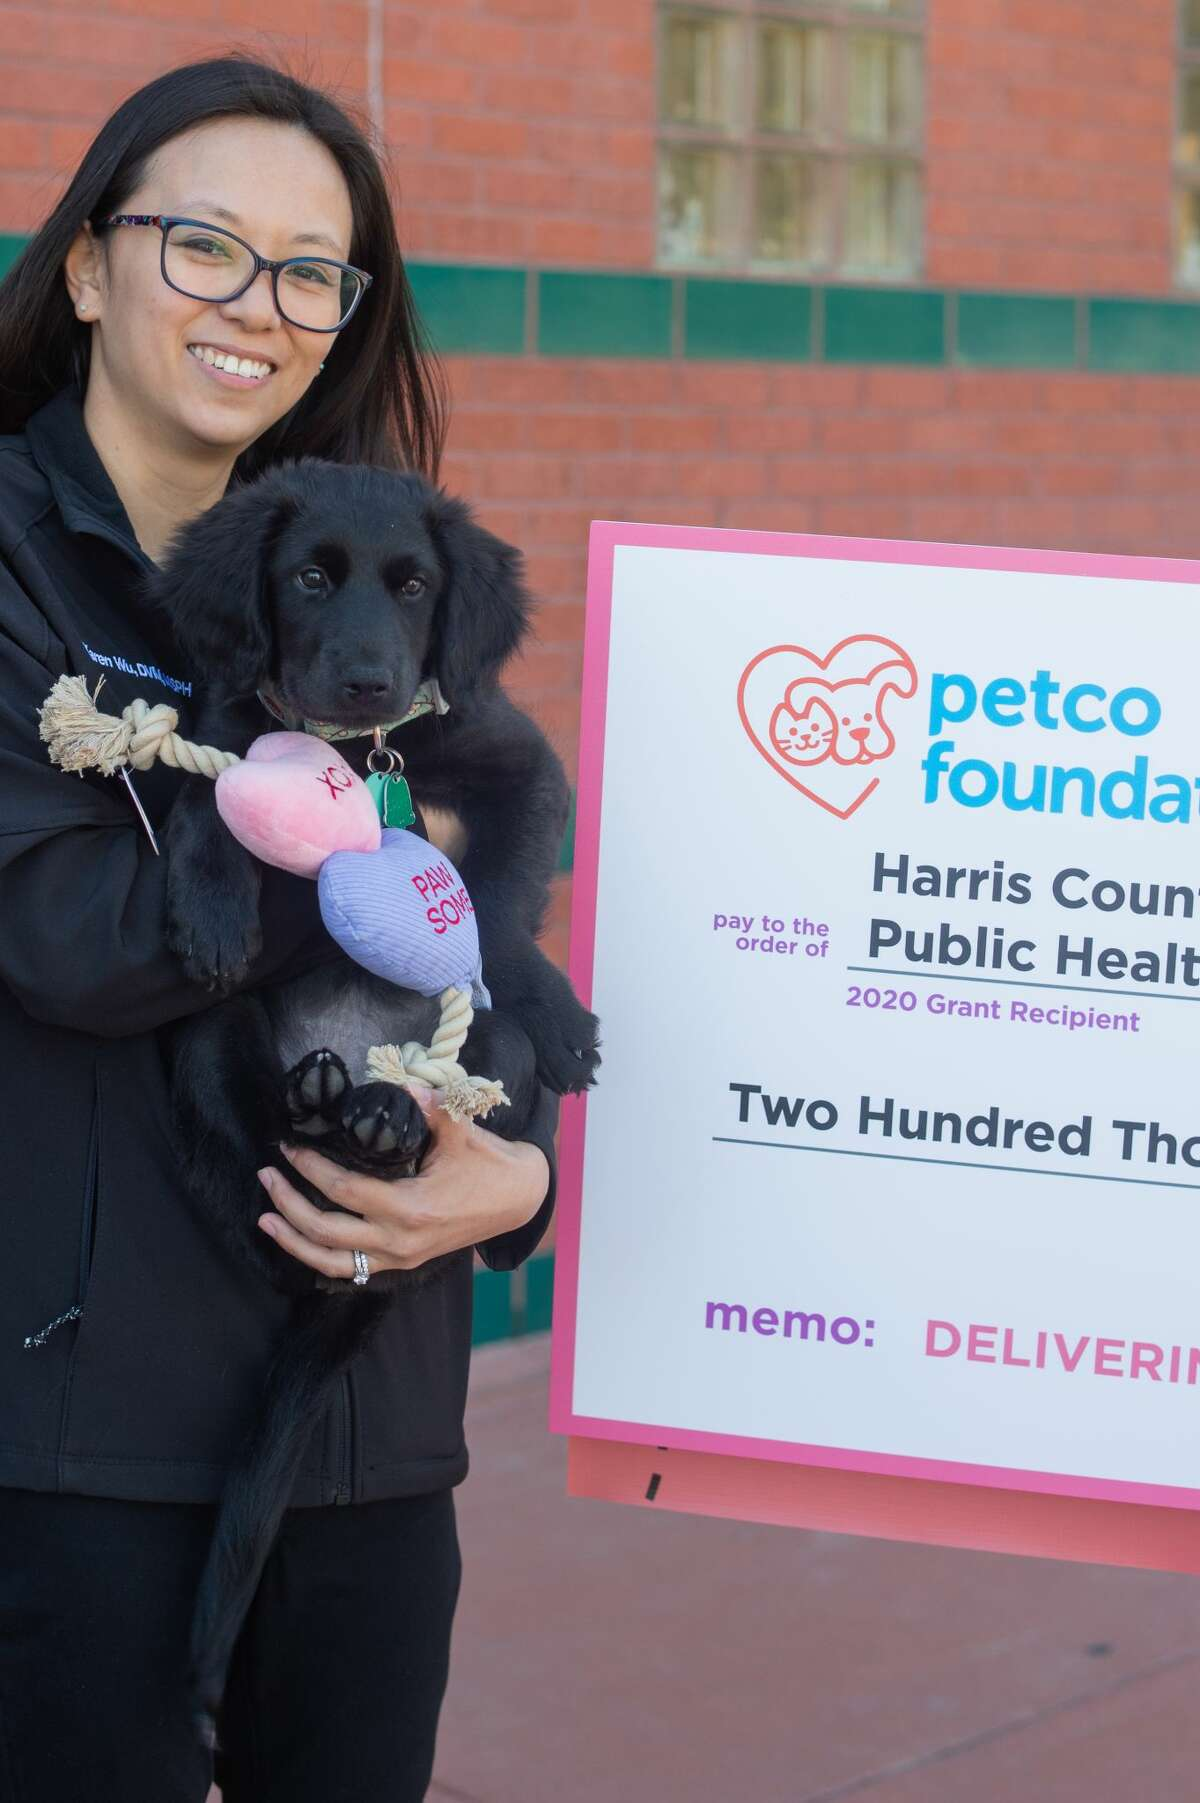 The Harris County Animal Shelter received a $200,000 grant and the Montgomery County Animal Shelter received a $300,000 grant as part of the Petco Foundation's